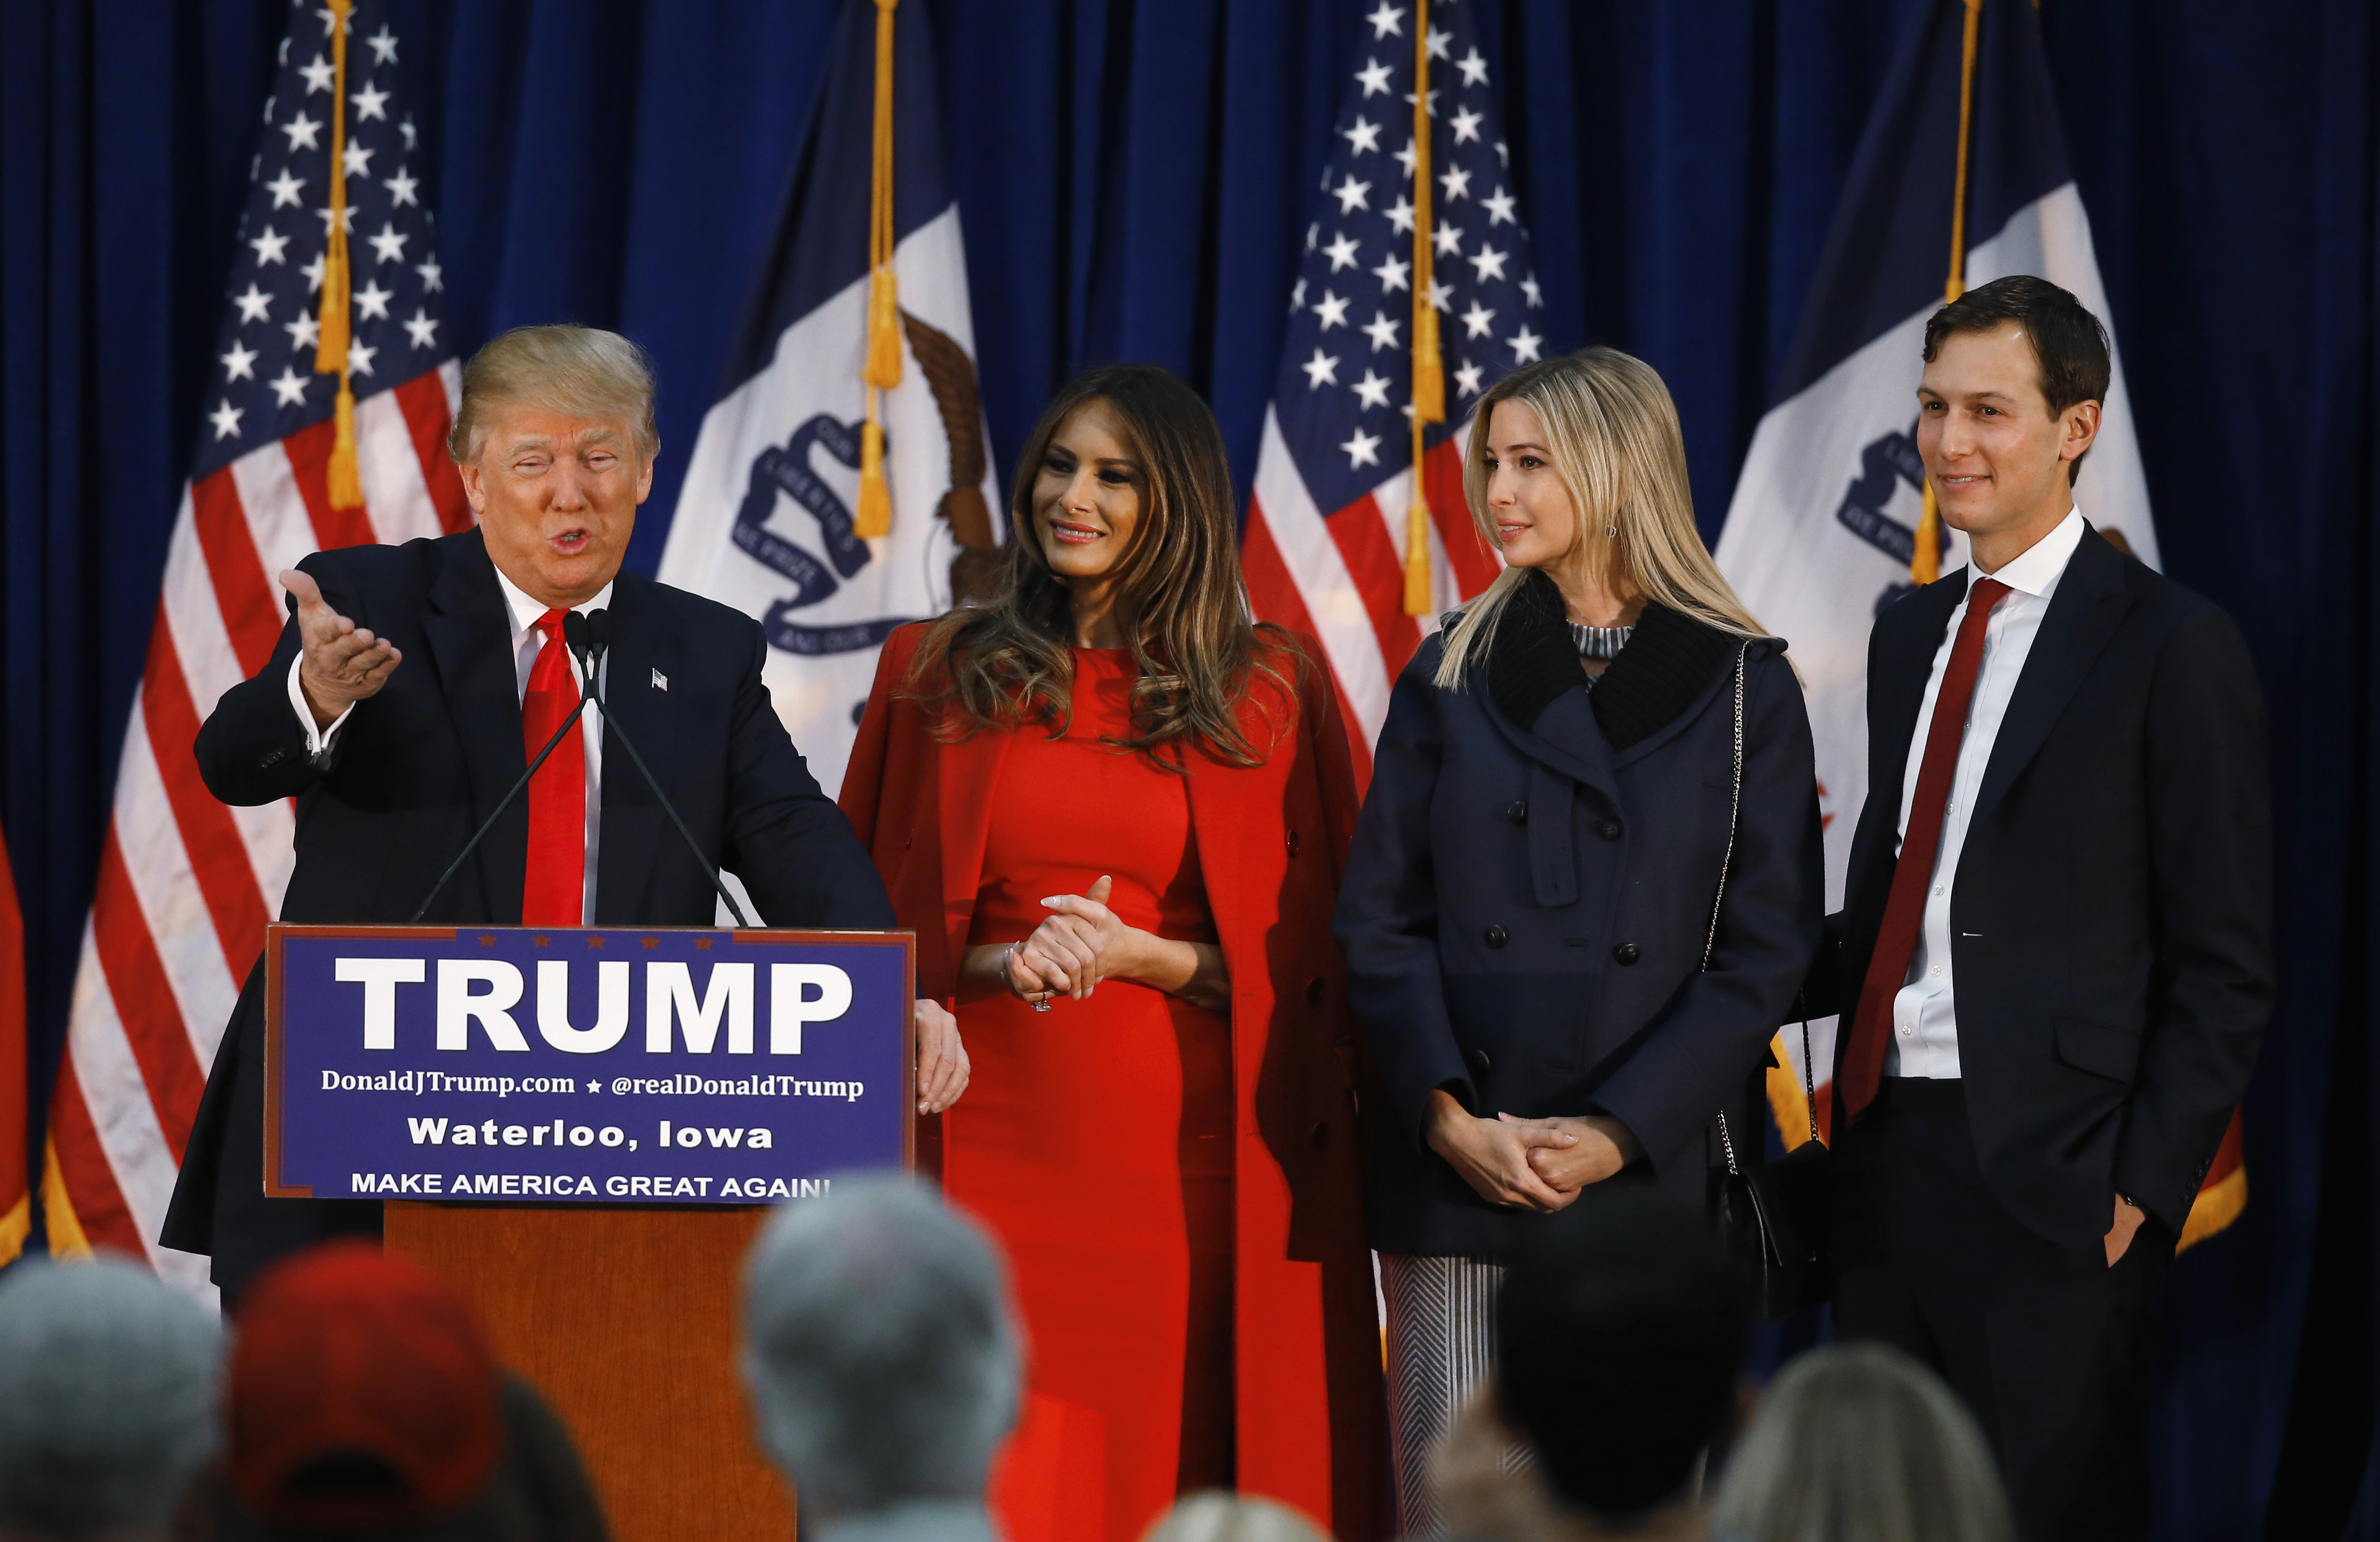 Republican presidential candidate Donald Trump, accompanied by, from second from left, wife Melania, daughter Ivanka her husband Jared Kushner, speaks during a campaign event, Monday, Feb. 1, 2016 in Waterloo, Iowa. (AP Photo/Paul Sancya)